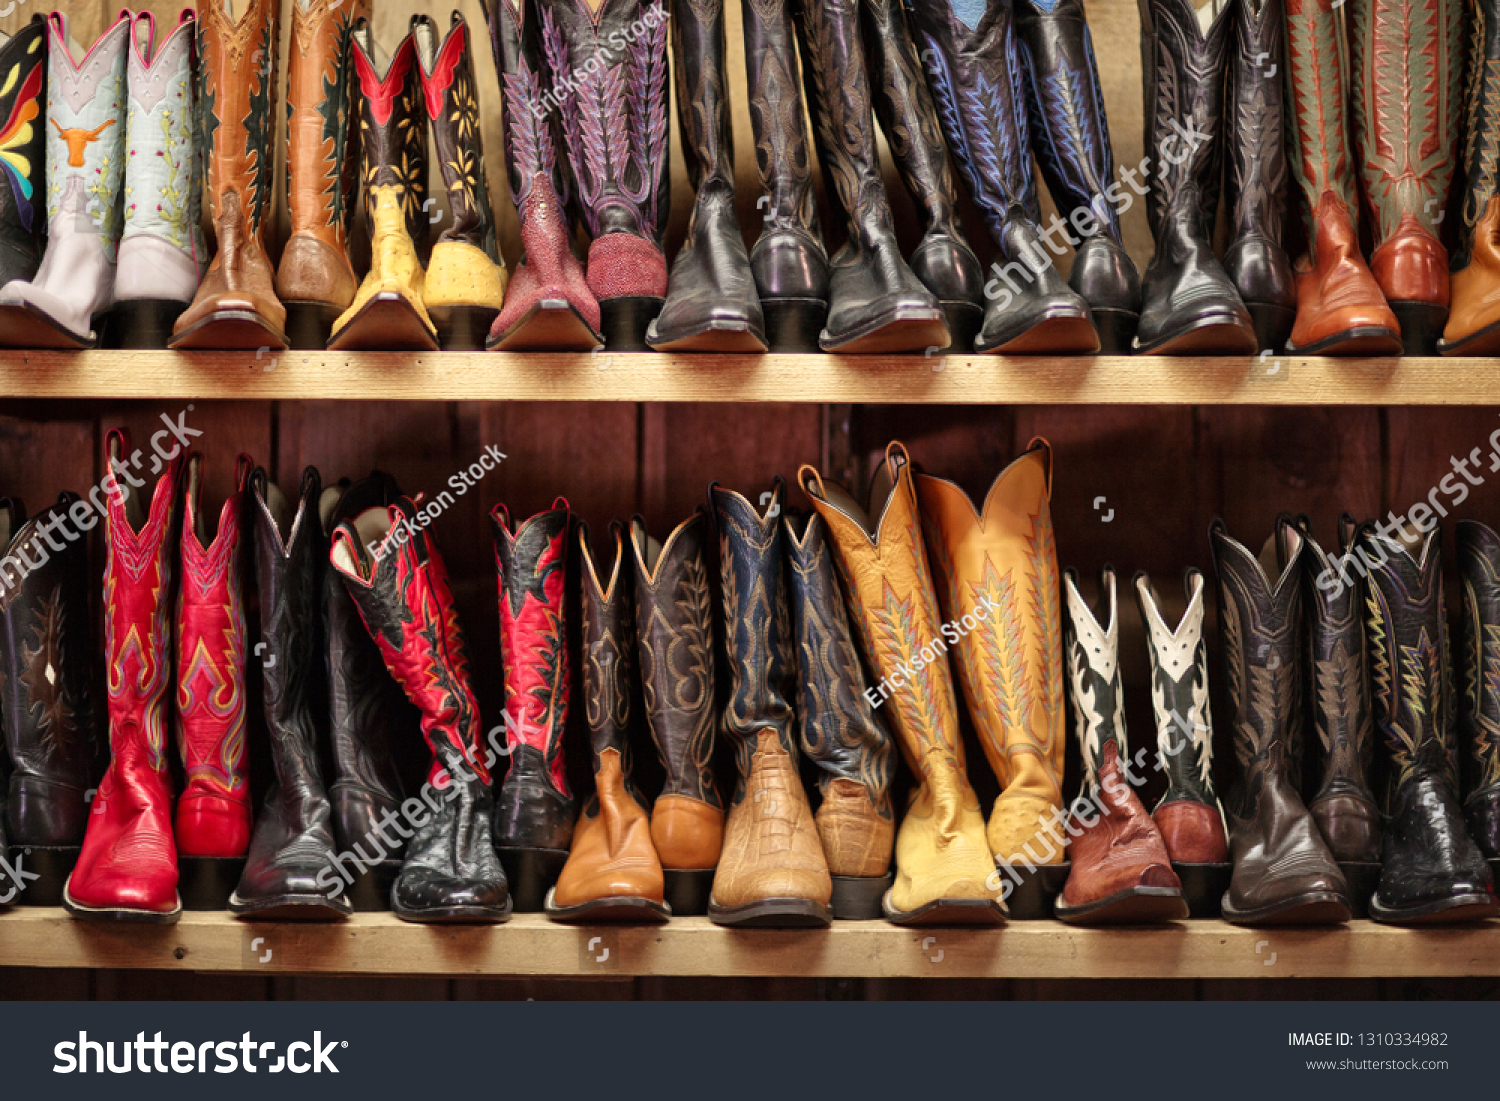 906abad2798 Rows Cowboy Boots Lined On Shelves Stock Photo (Edit Now) 1310334982